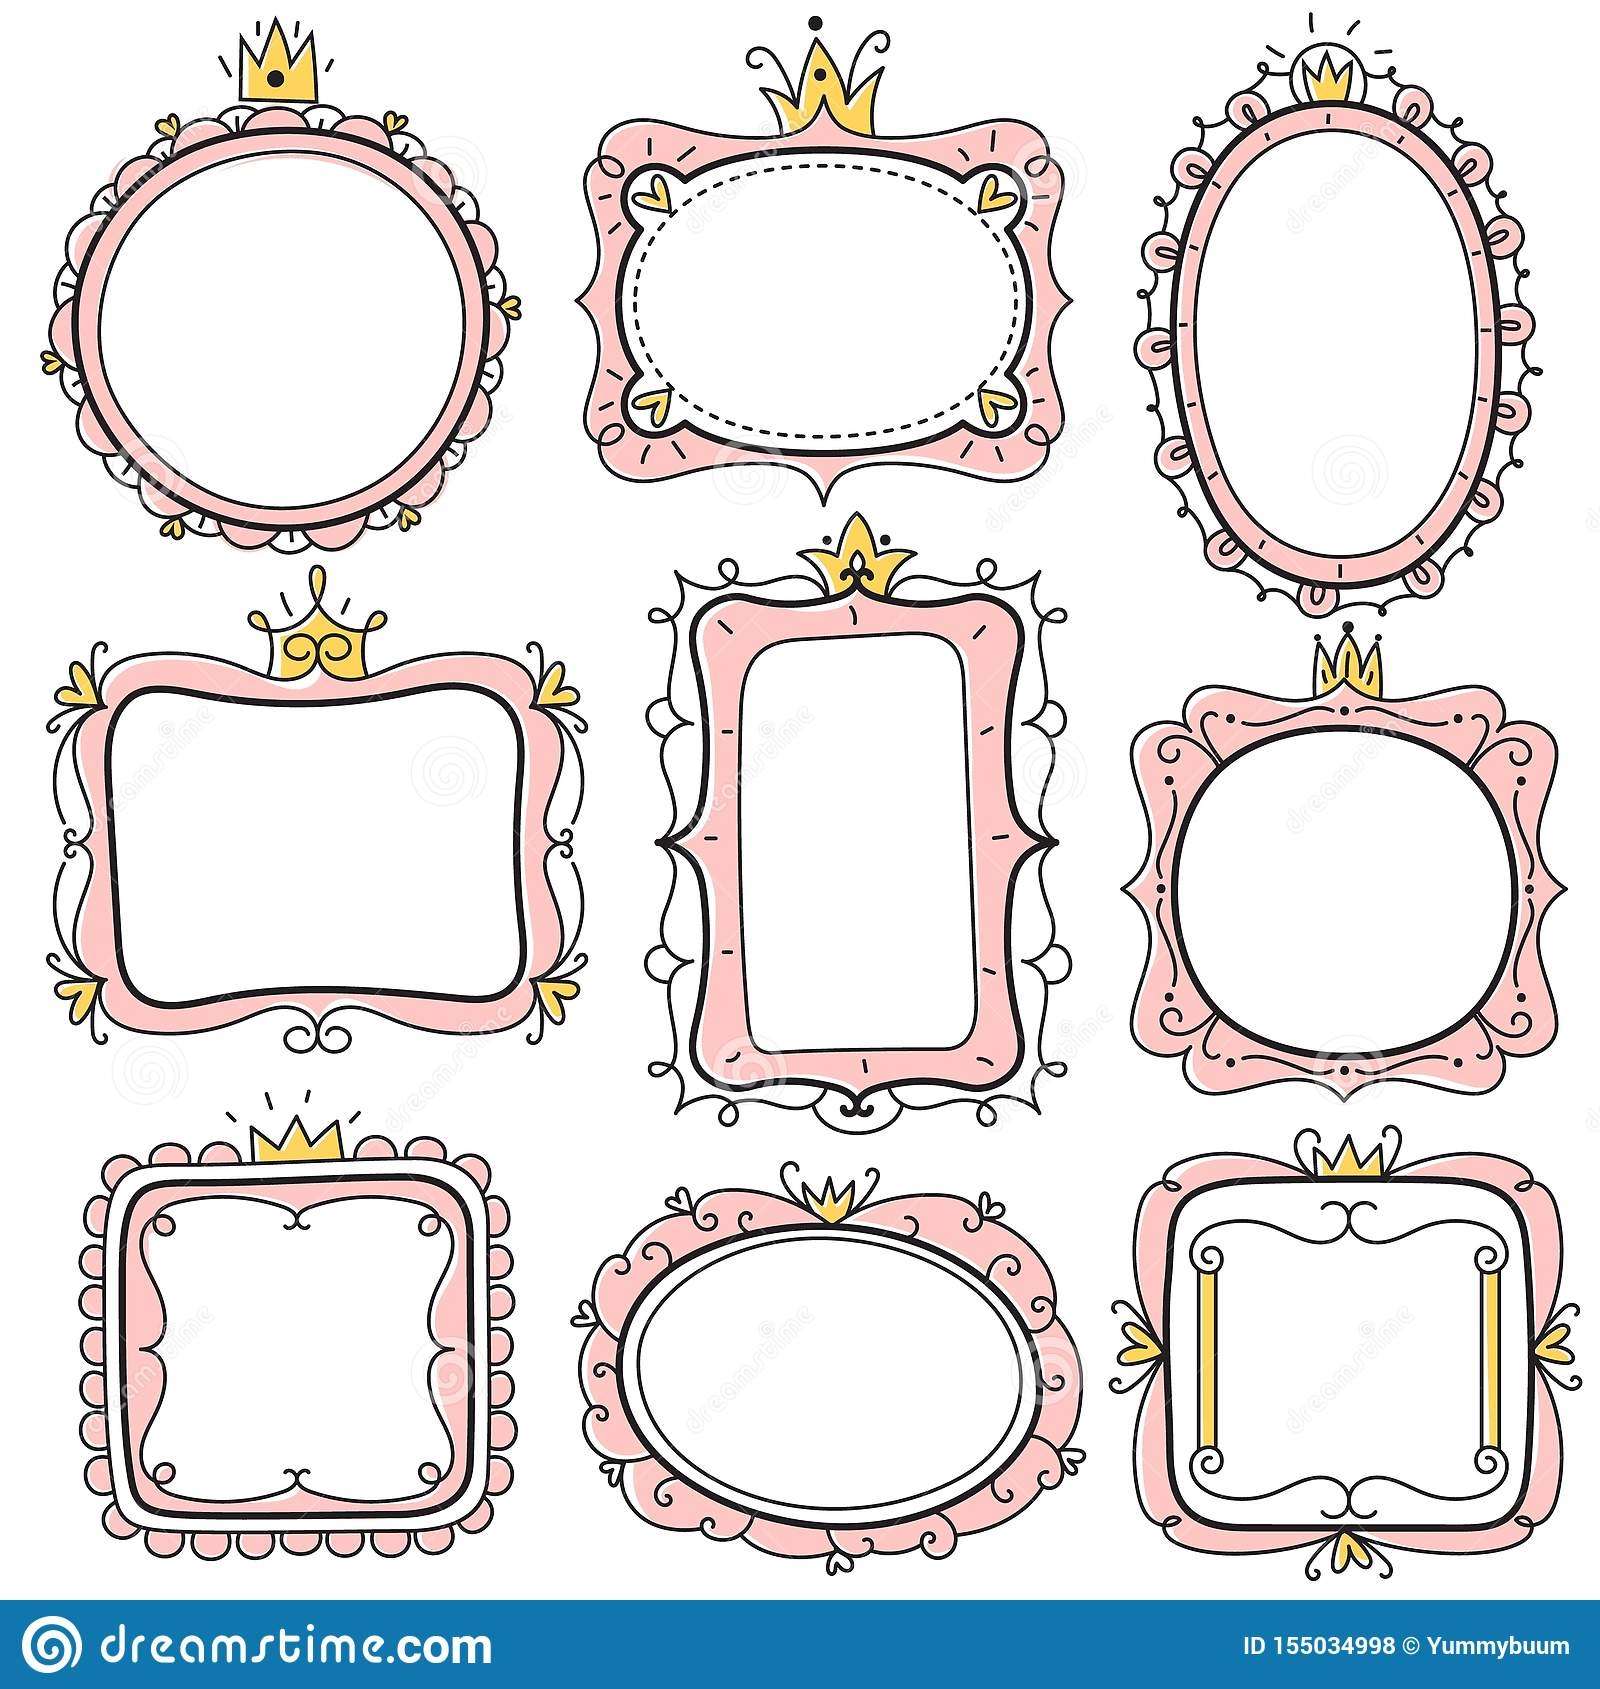 https www dreamstime com princess frames pink cute floral mirror crown kids certificate borders little girl birthday invitation card vector creative image155034998